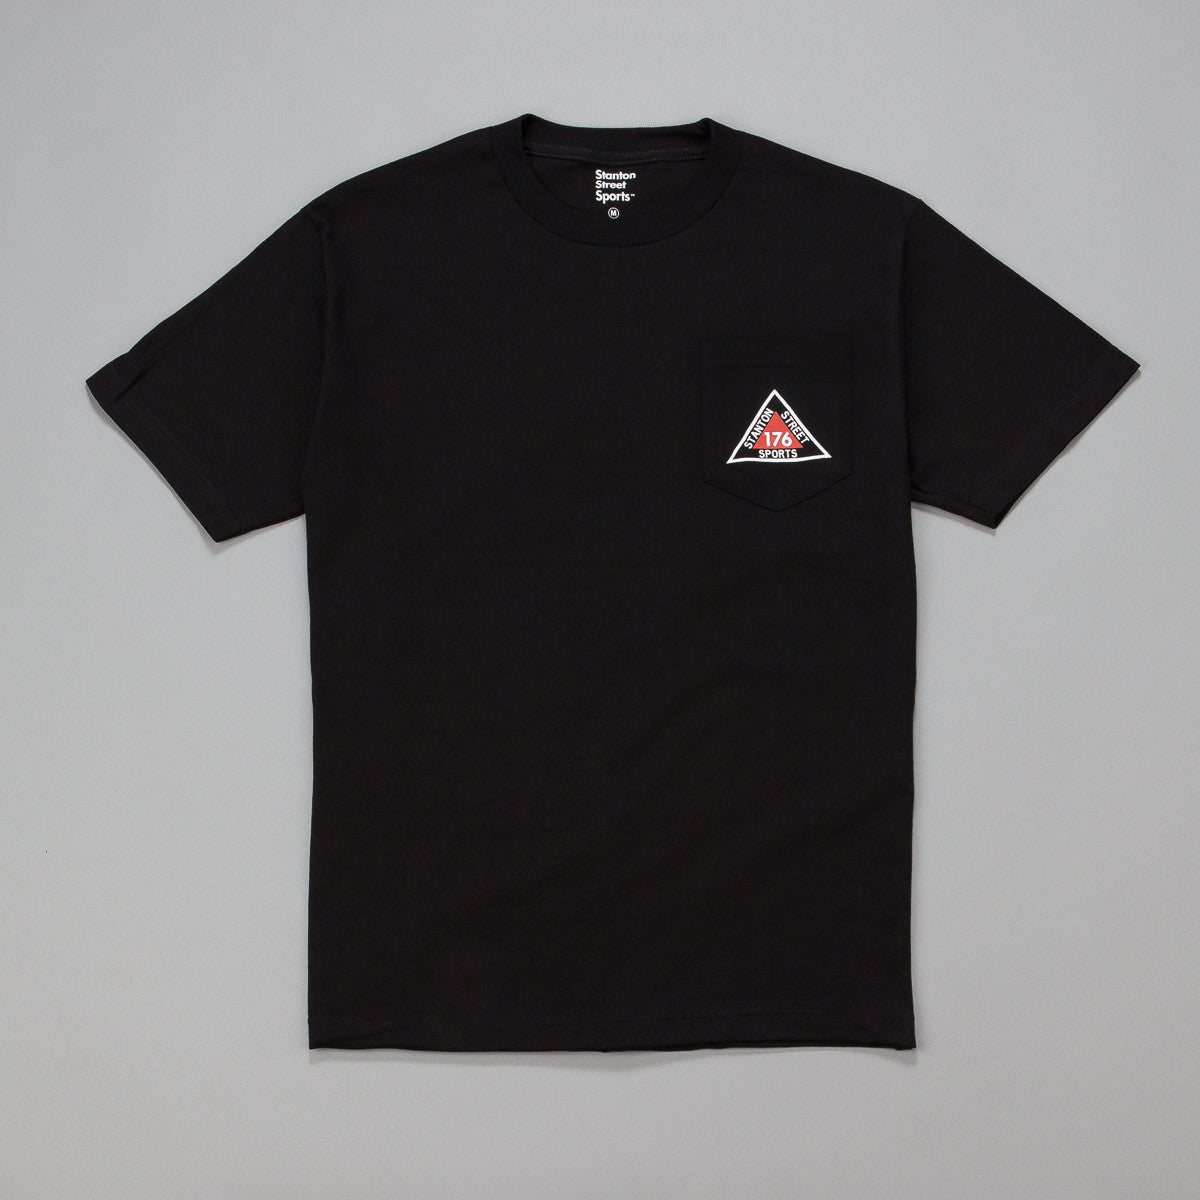 Stanton Street Sports Ridge Pocket T-Shirt